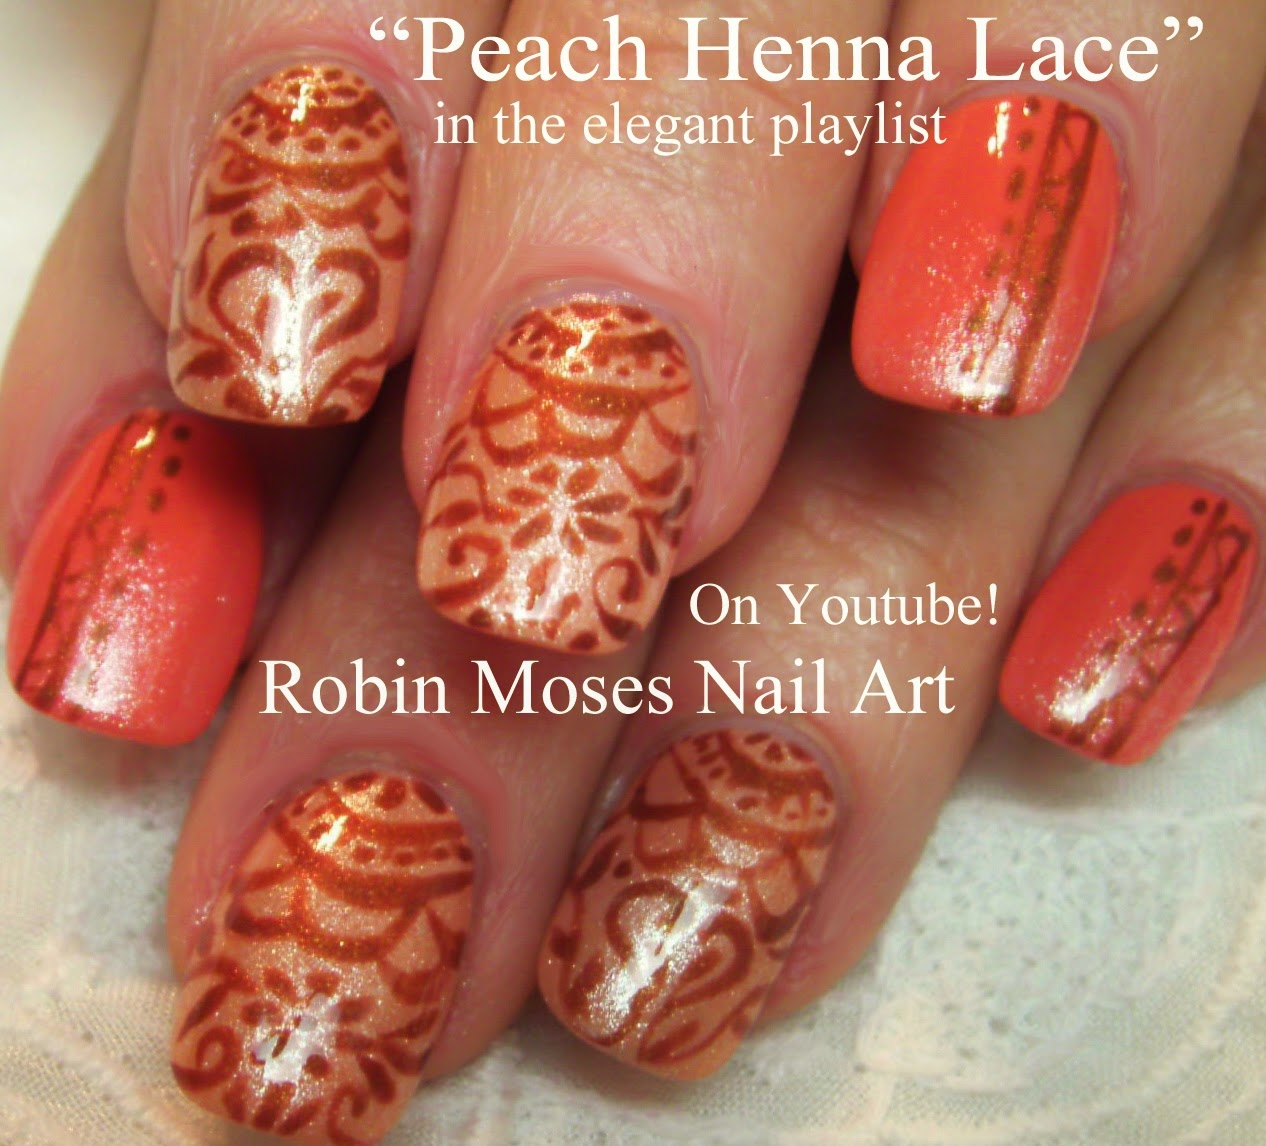 Robin Moses Nail Art Quotorange Nailsquot Quotnail Artquot Quotpeach Nails